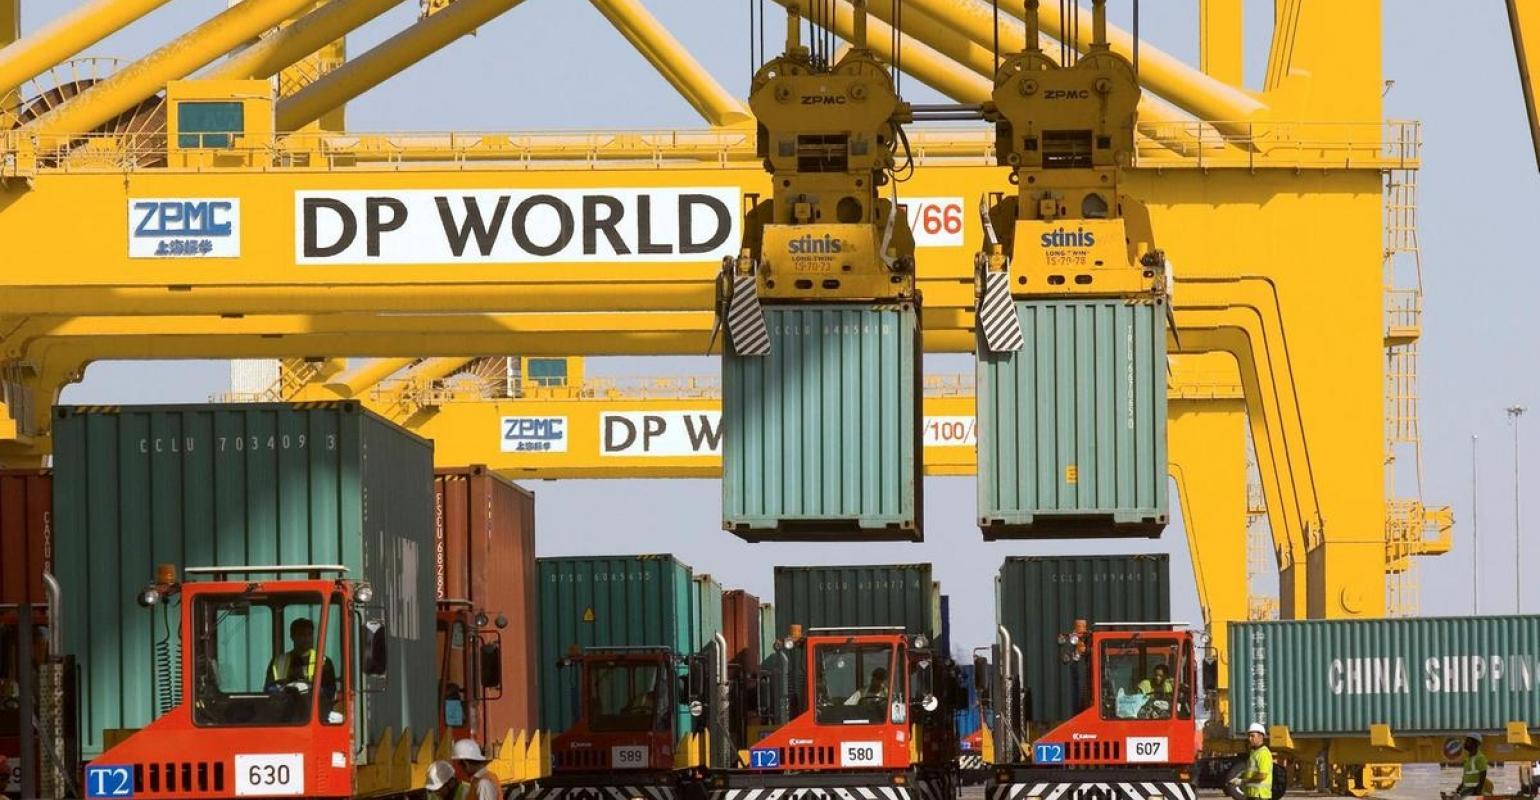 Major port operator DP World announces volume growth in 2020